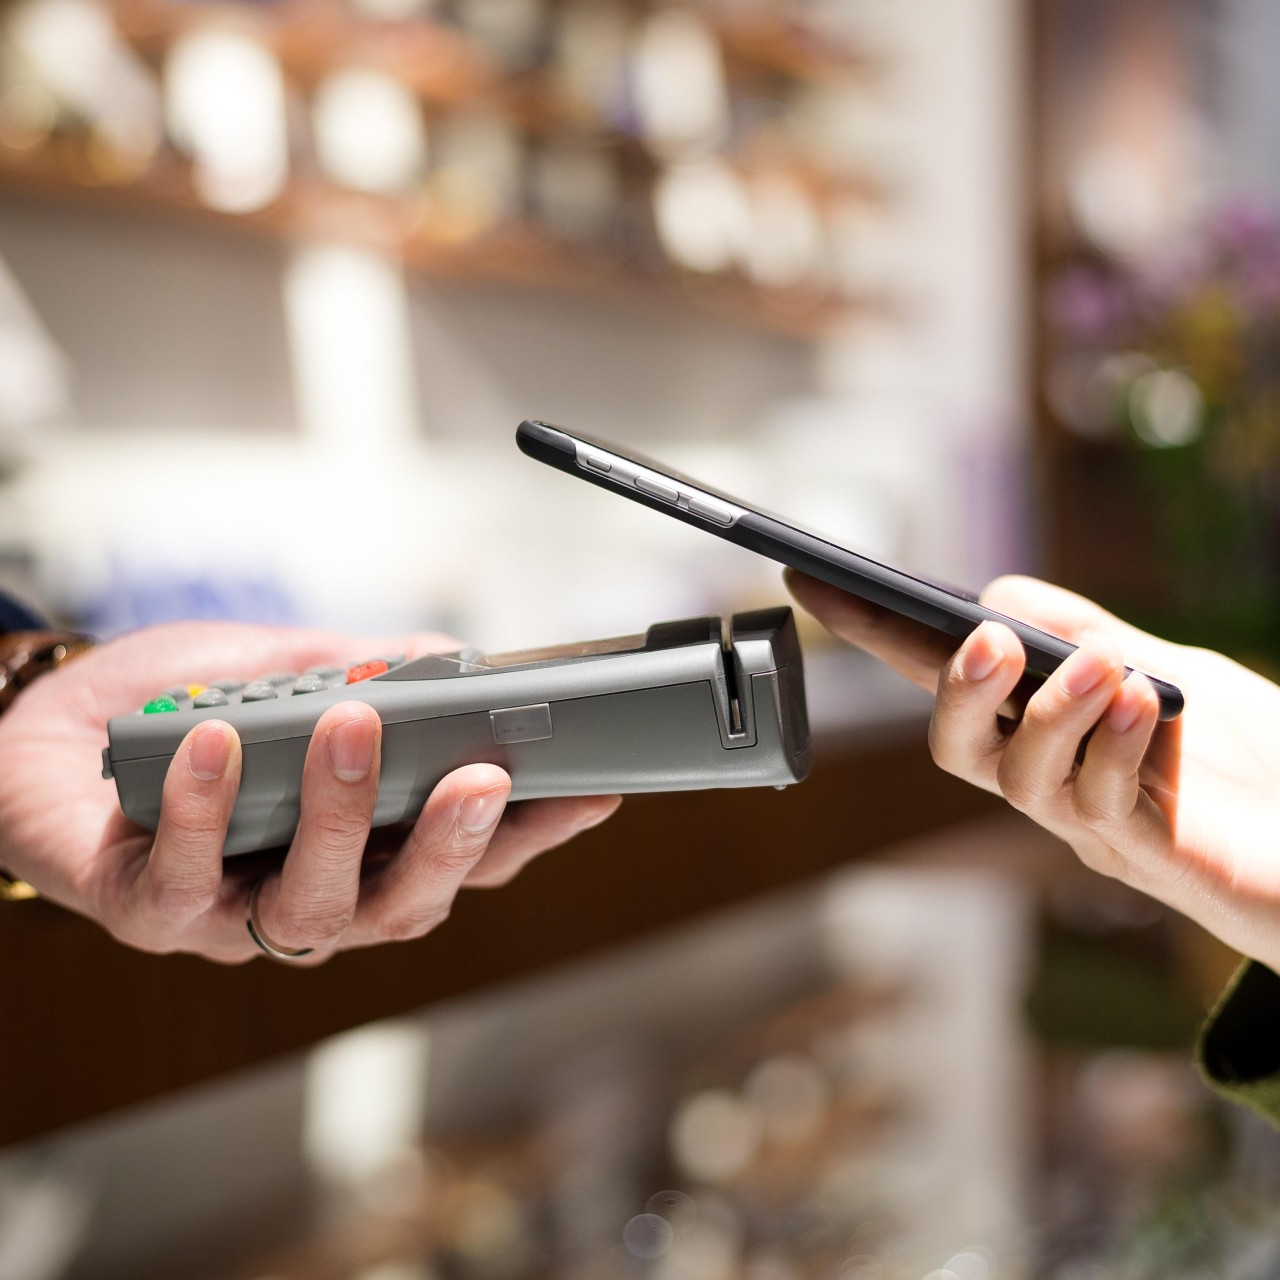 Apple Pay, Alipay, WeChat Pay and PayMe put to the test